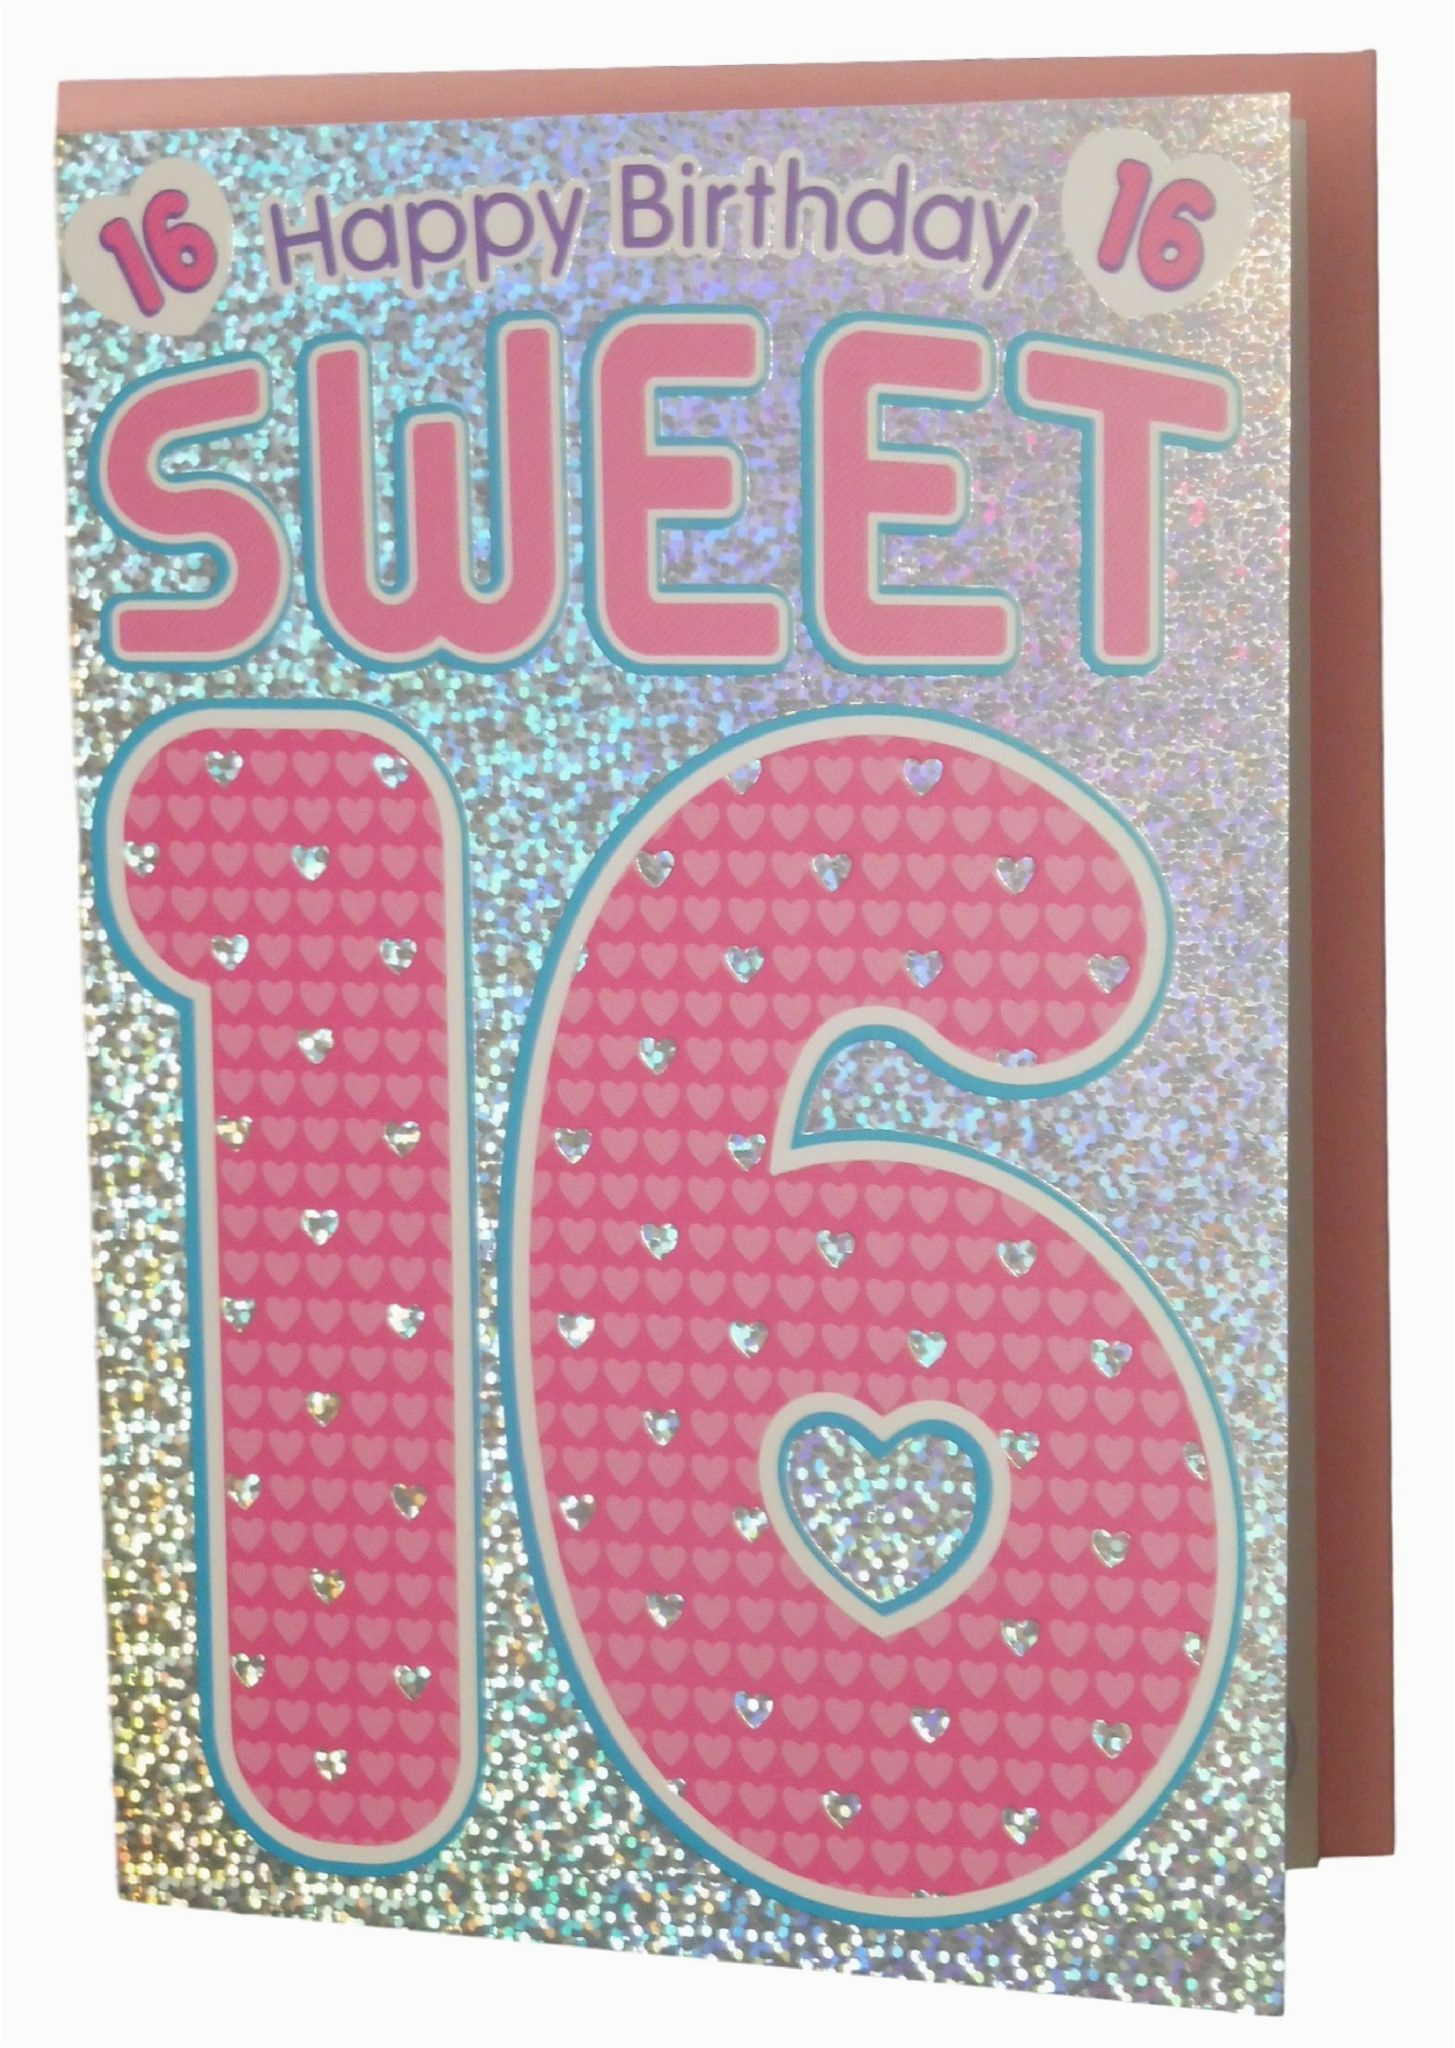 age sweet 16 happy 16th birthday greetings card for her 305 p